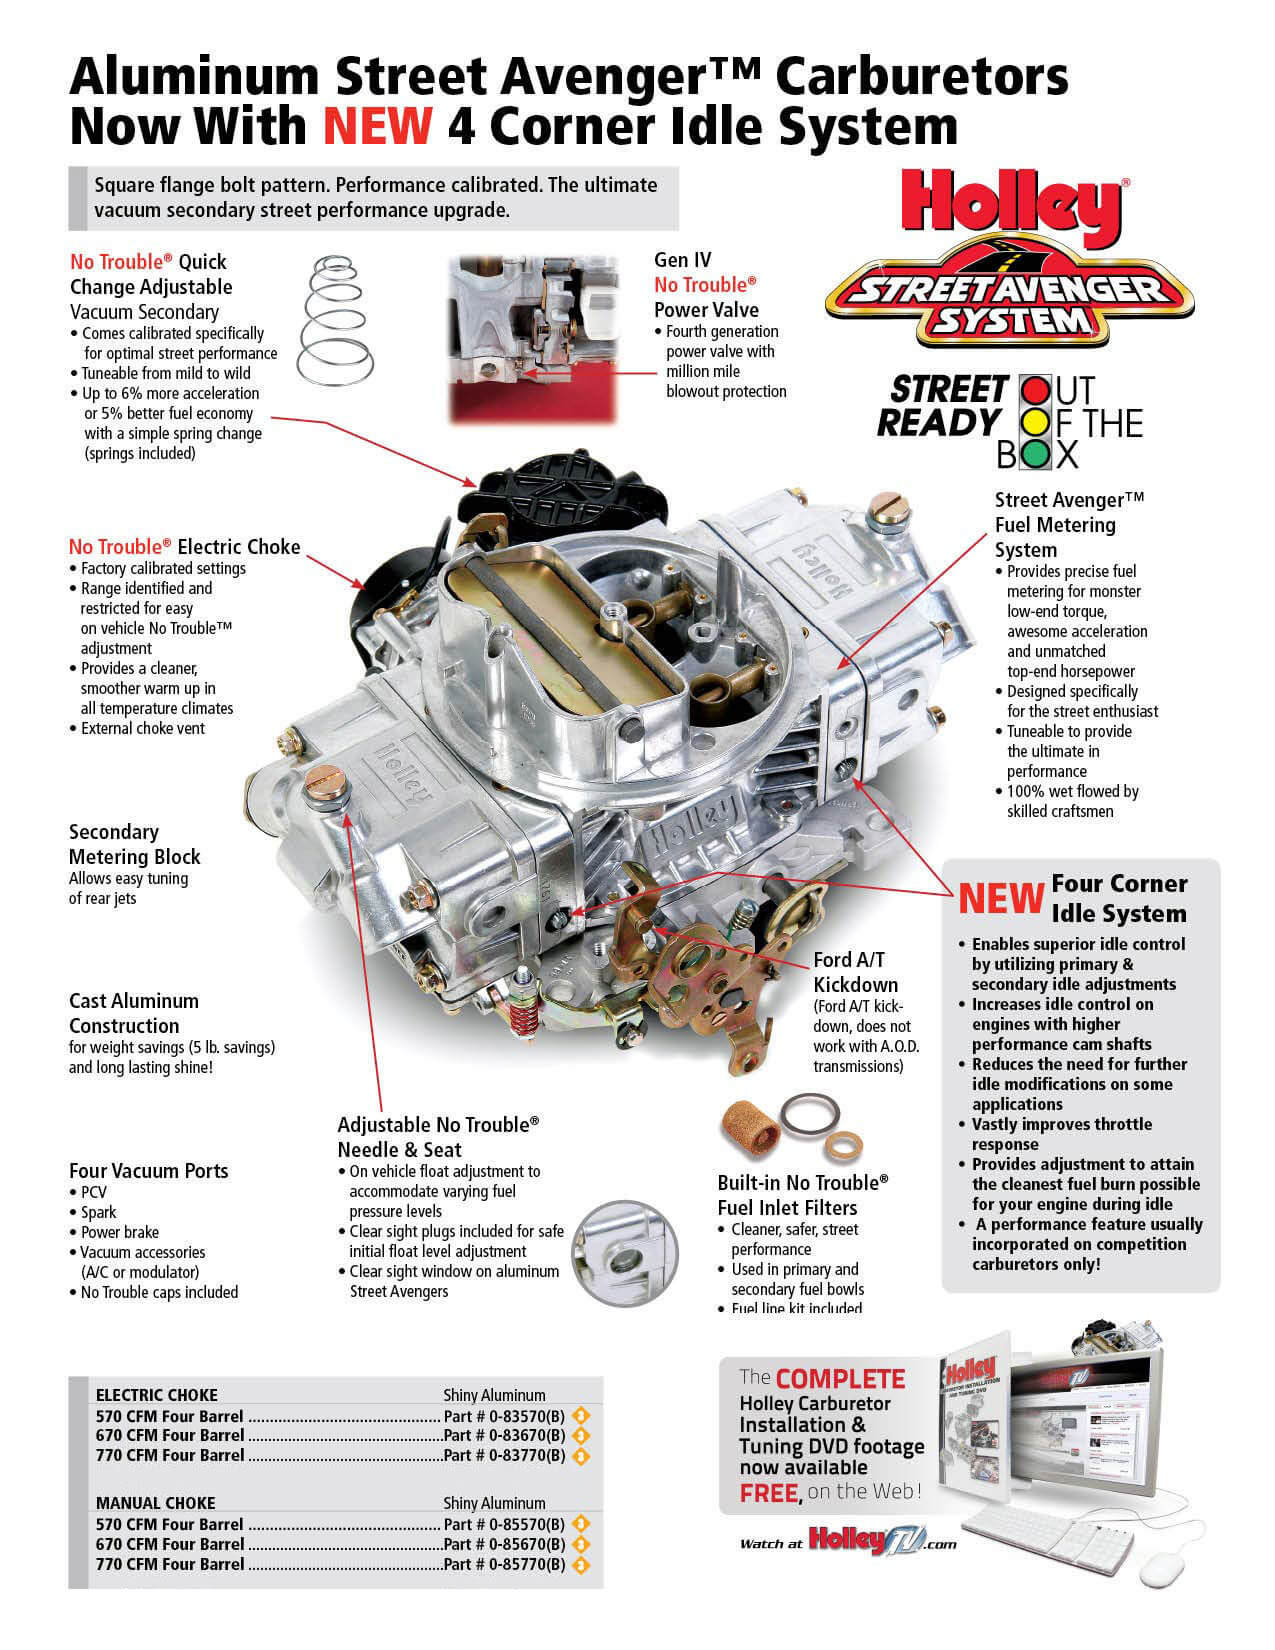 1967 1991 amc v8 holley 570 cfm street avenger aluminum carburetor vacuum secondaries manual choke [ 1275 x 1650 Pixel ]